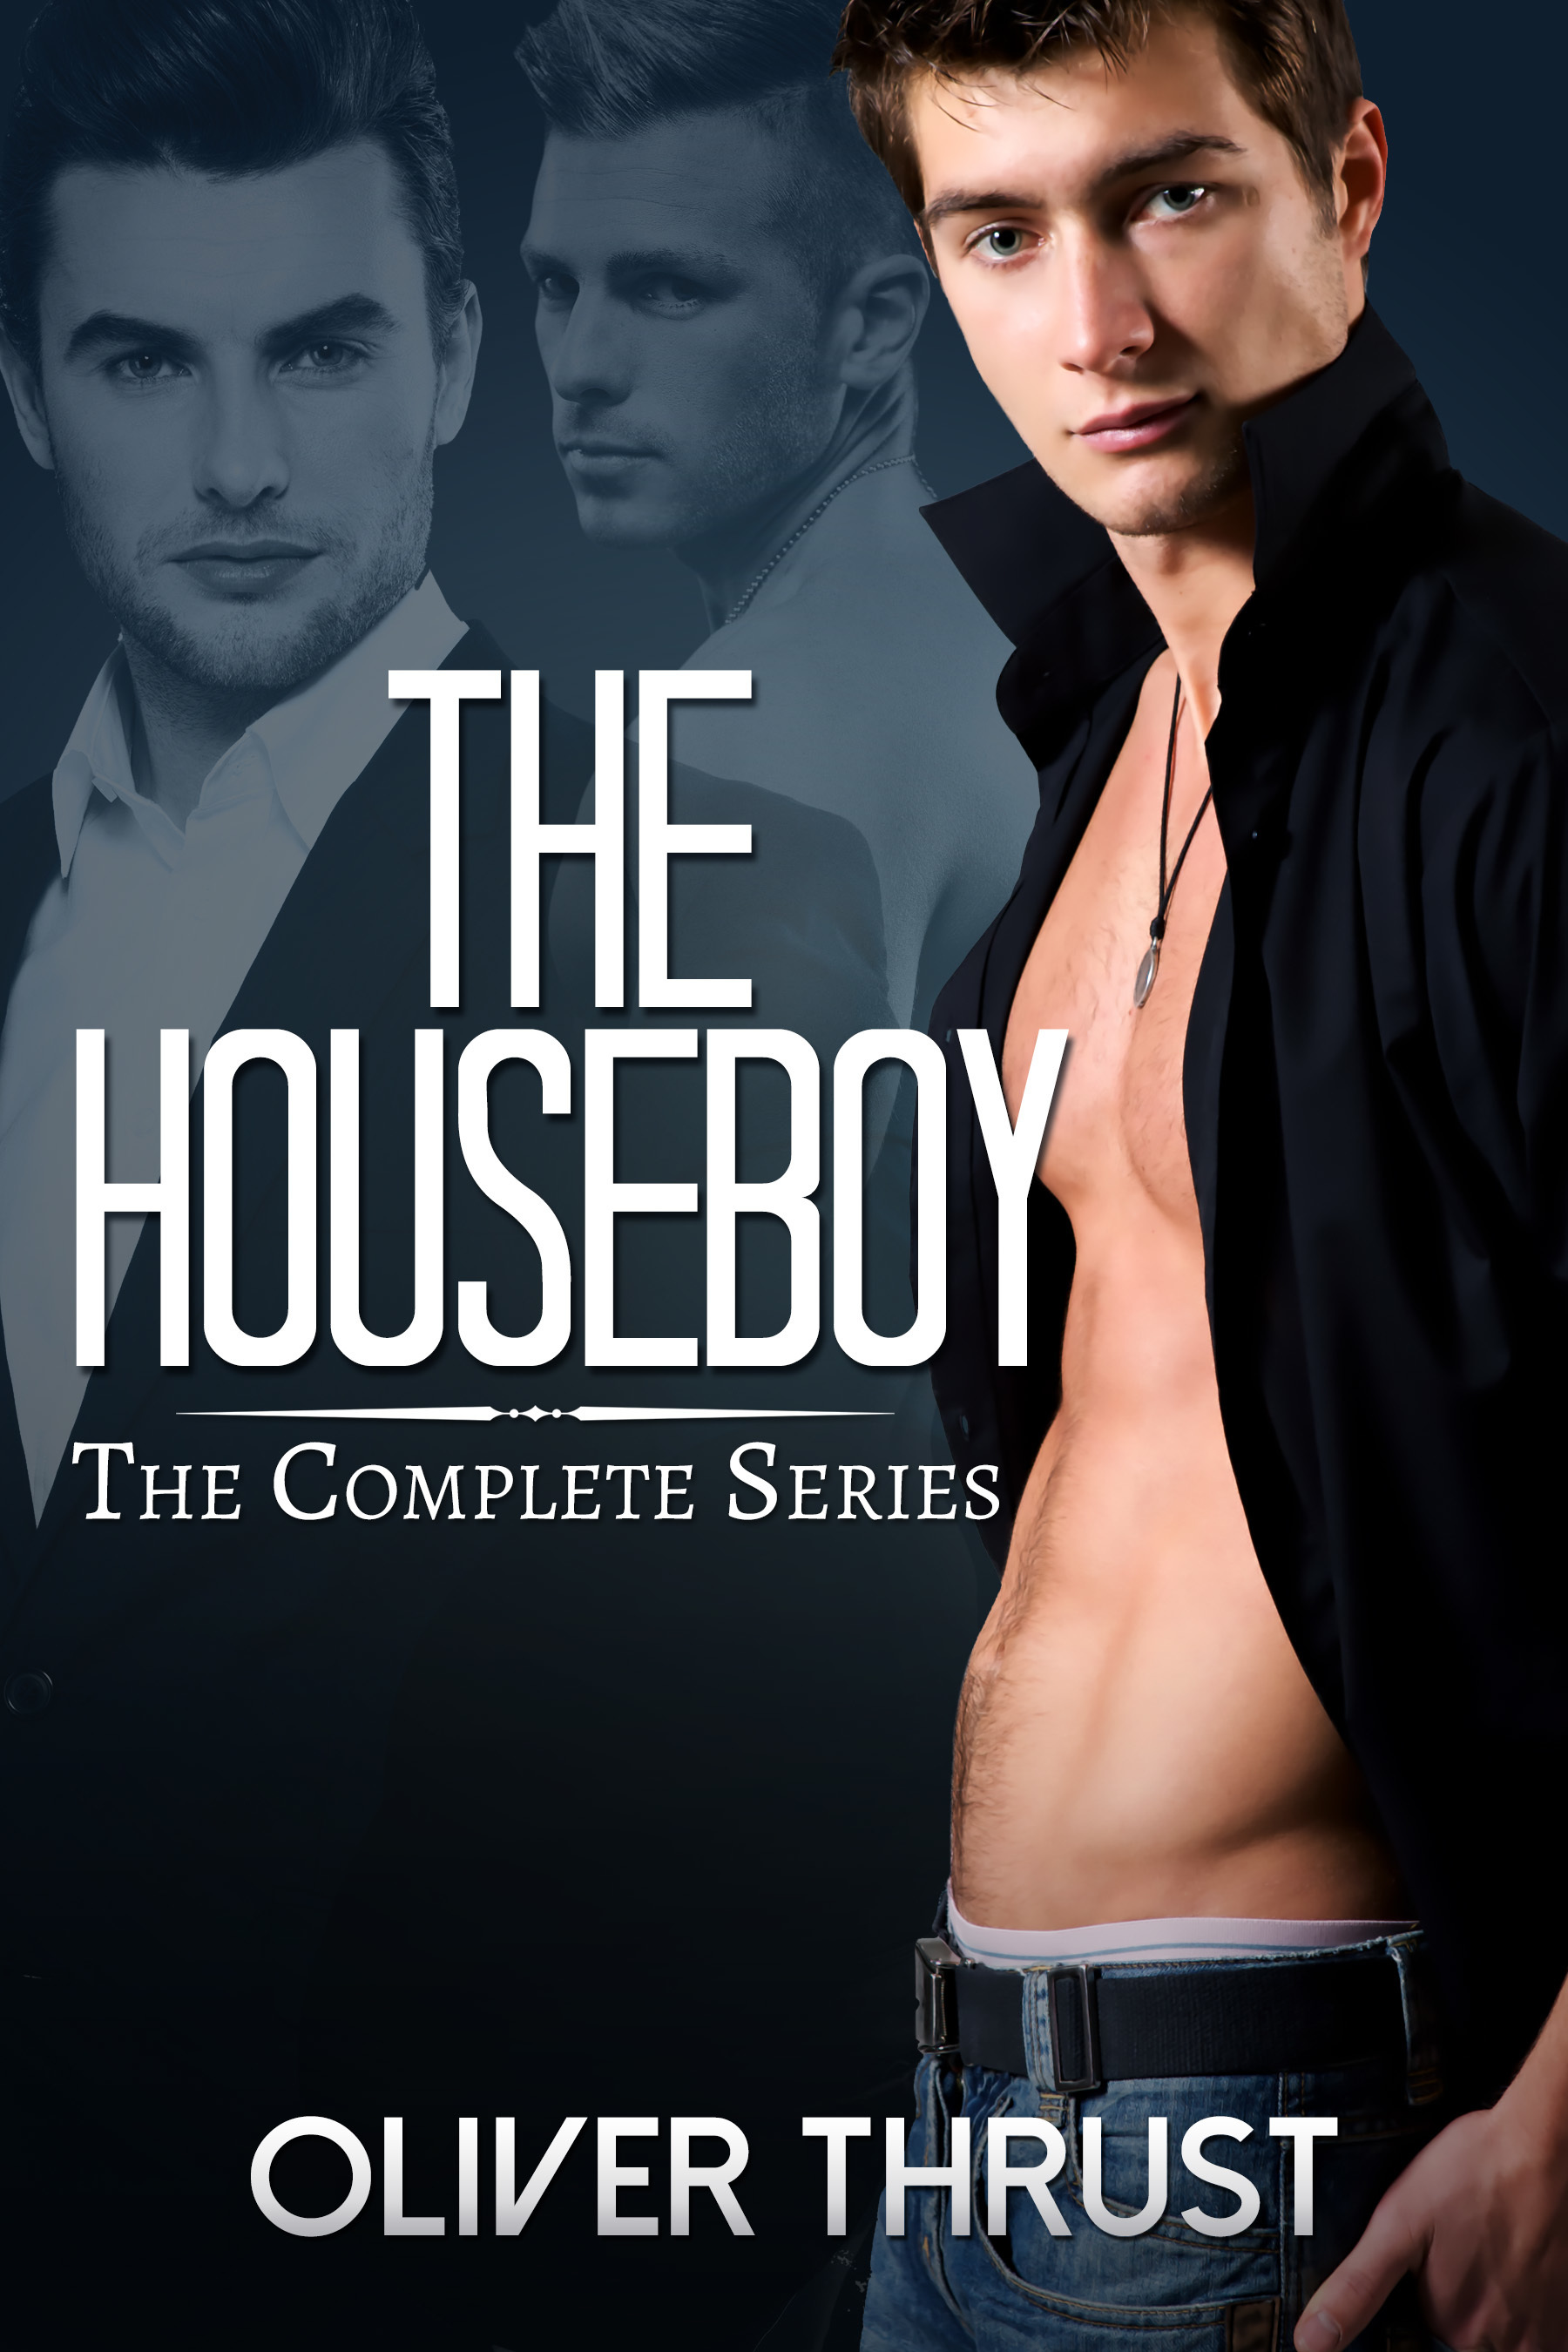 The Houseboy: Complete Series Oliver Thrust